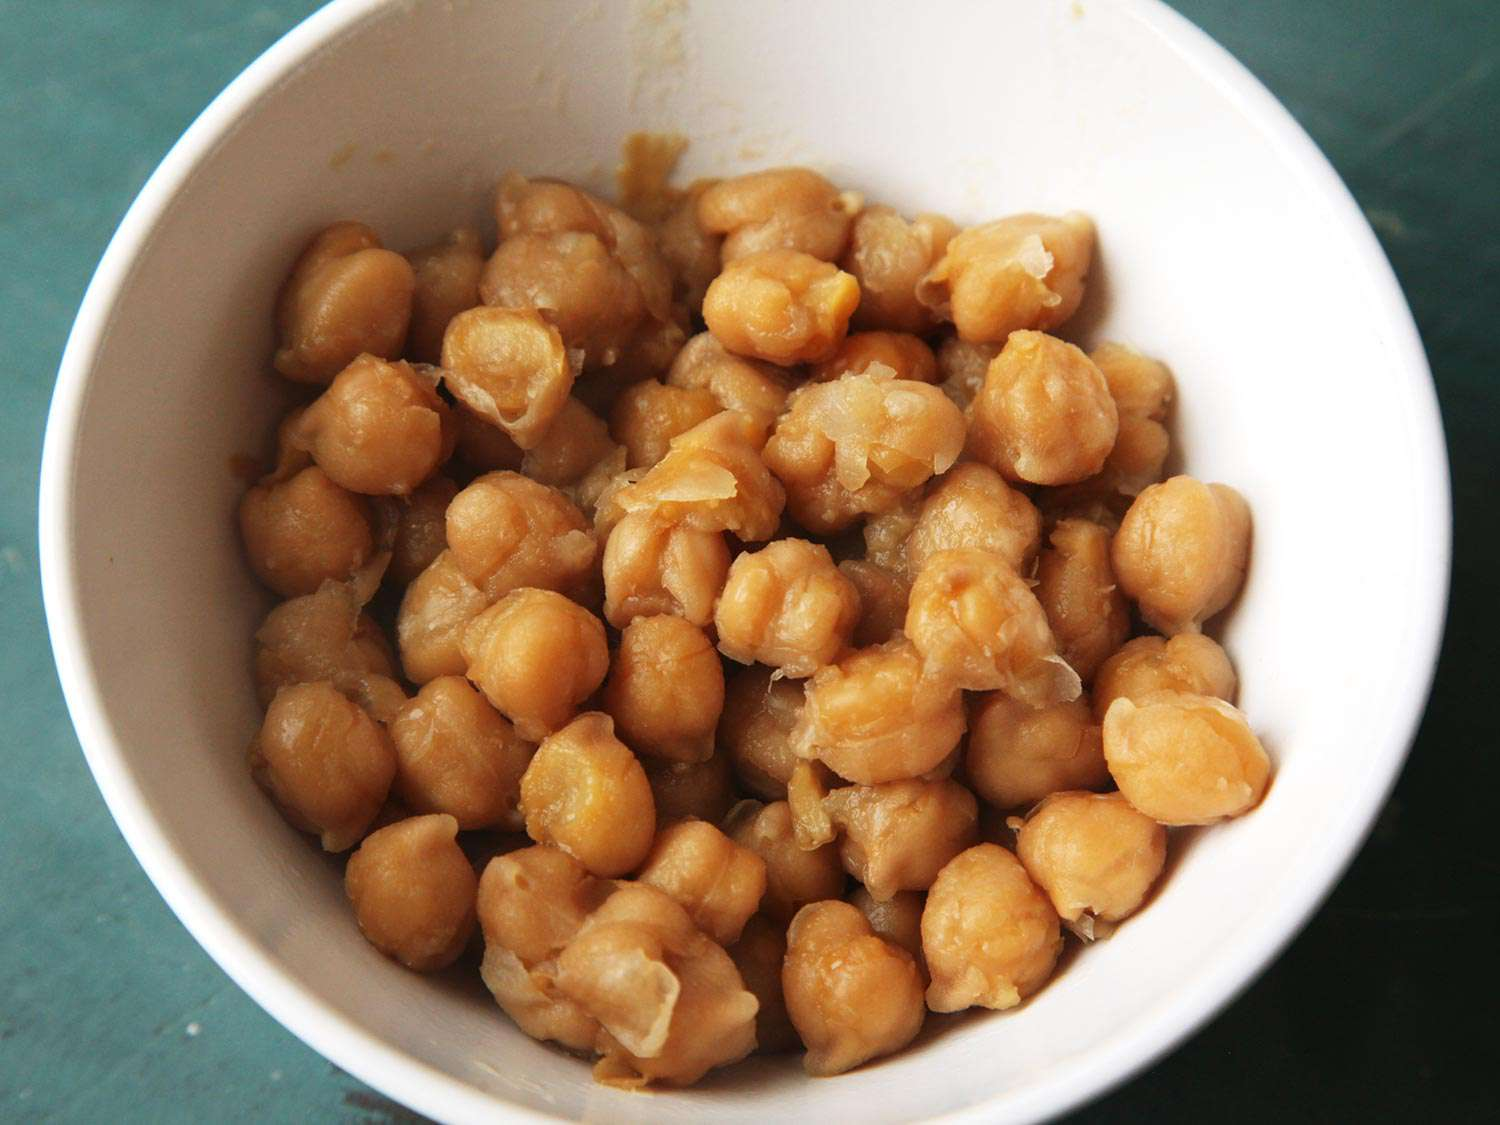 A white bowl of thoroughly cooked, falling-apart chickpeas